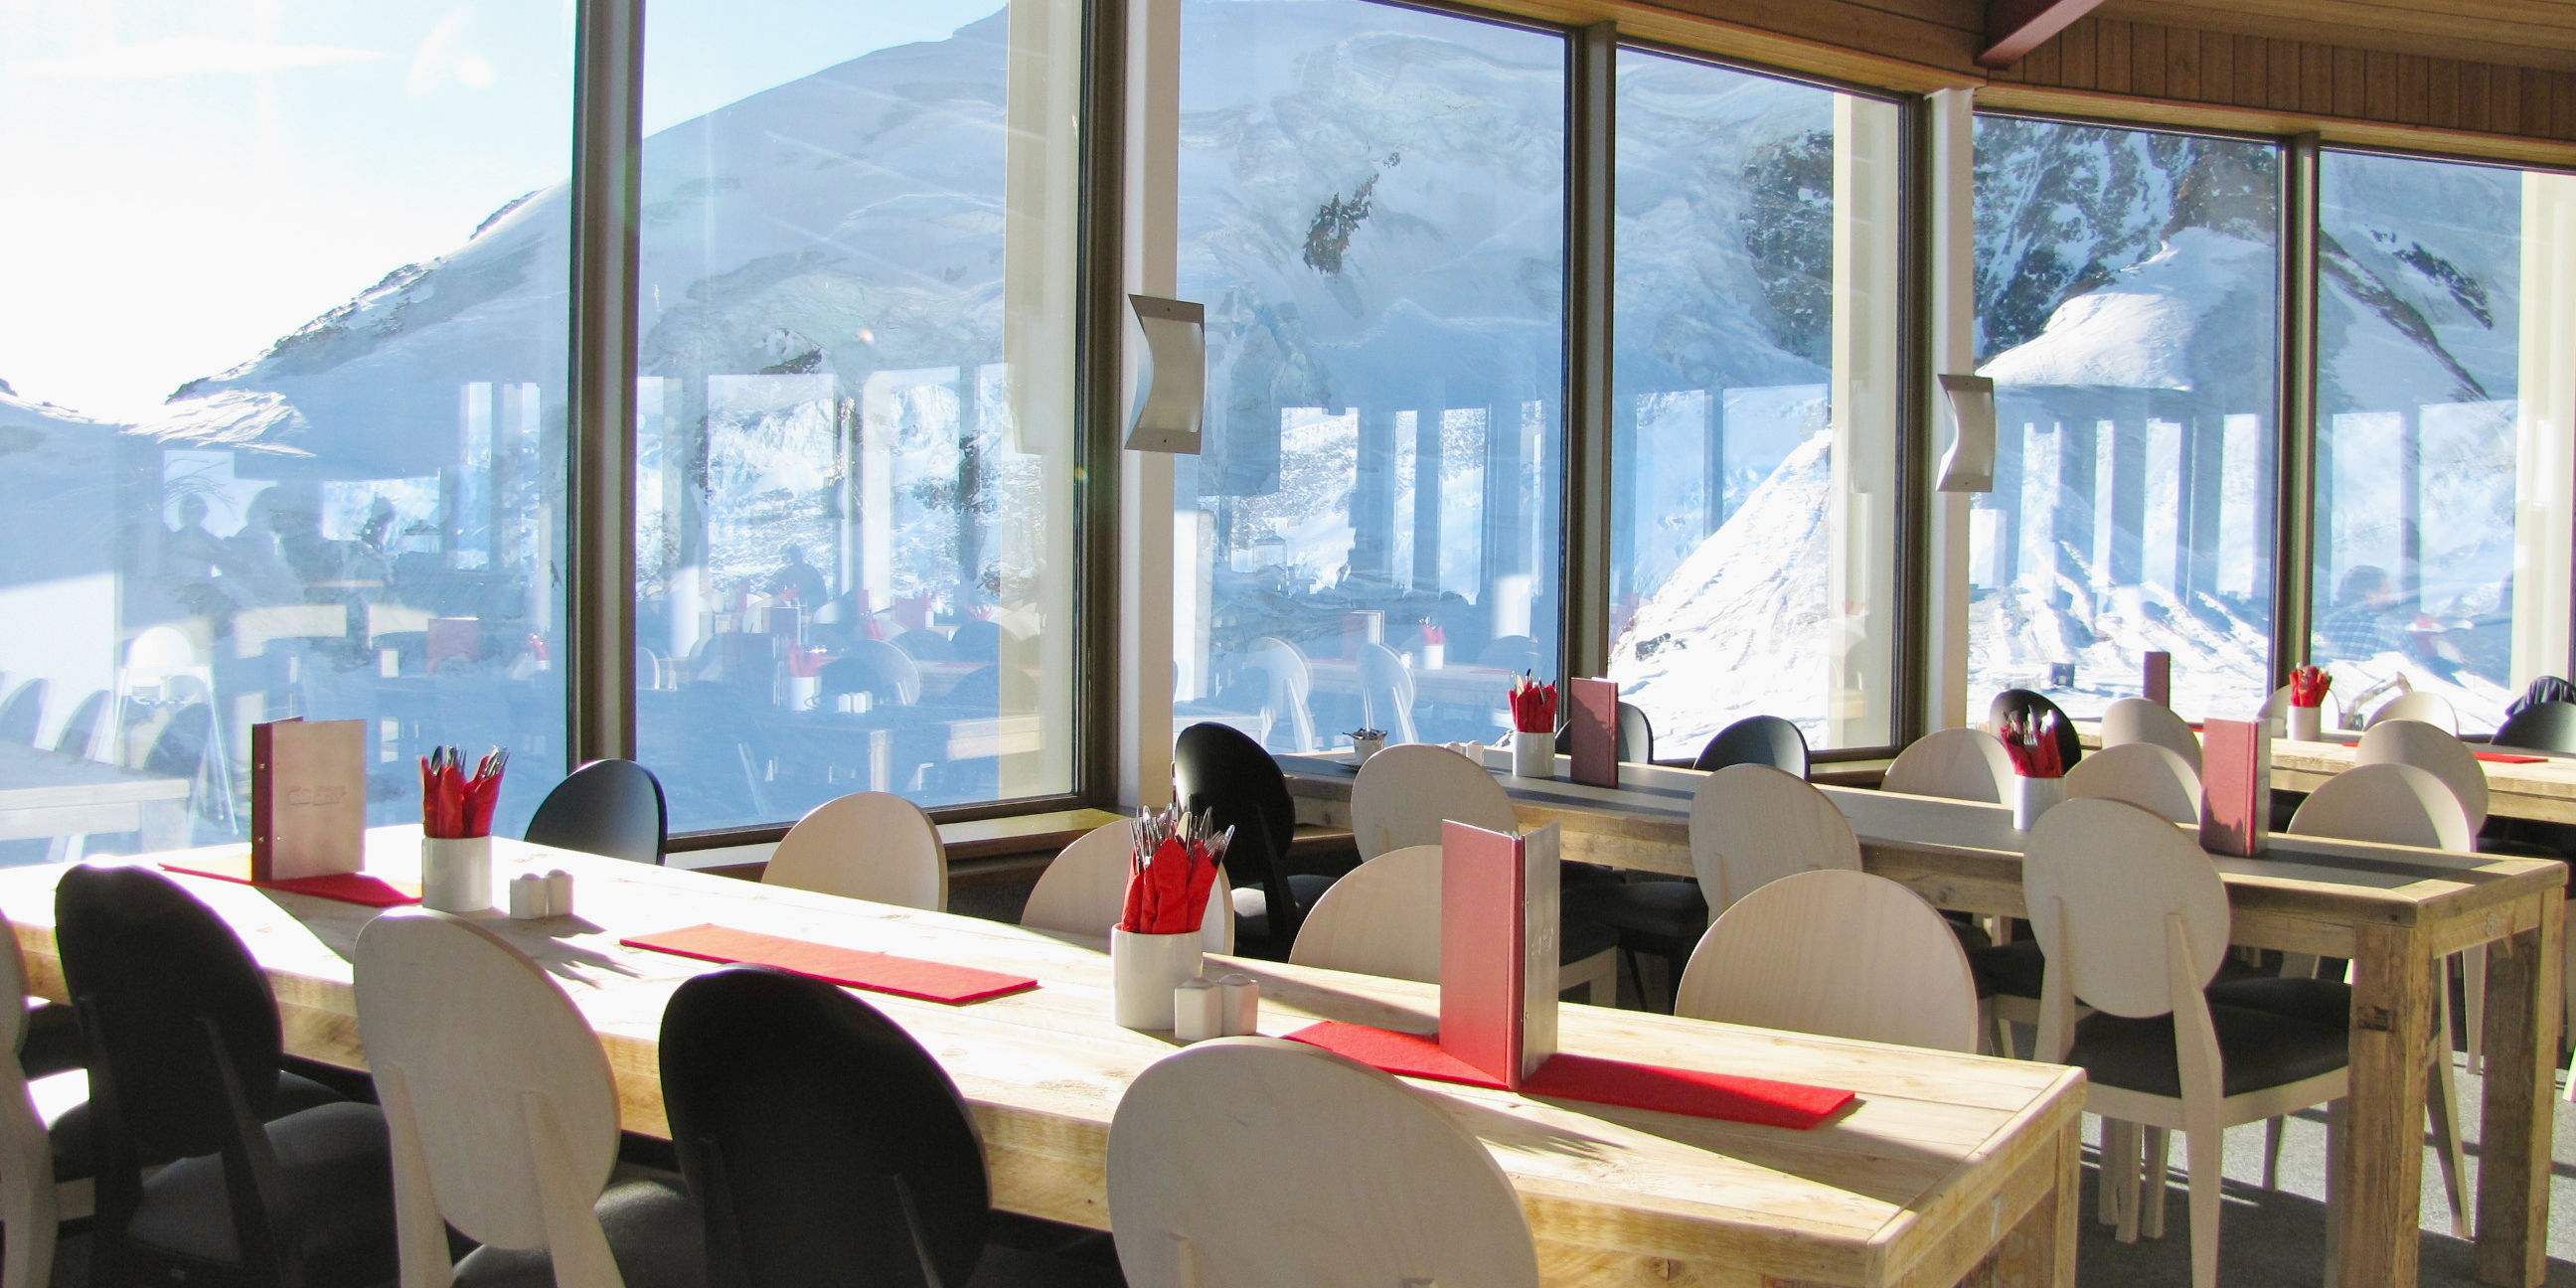 Family-friendly Restaurants in the Free Republic of Holidays Saas-Fee